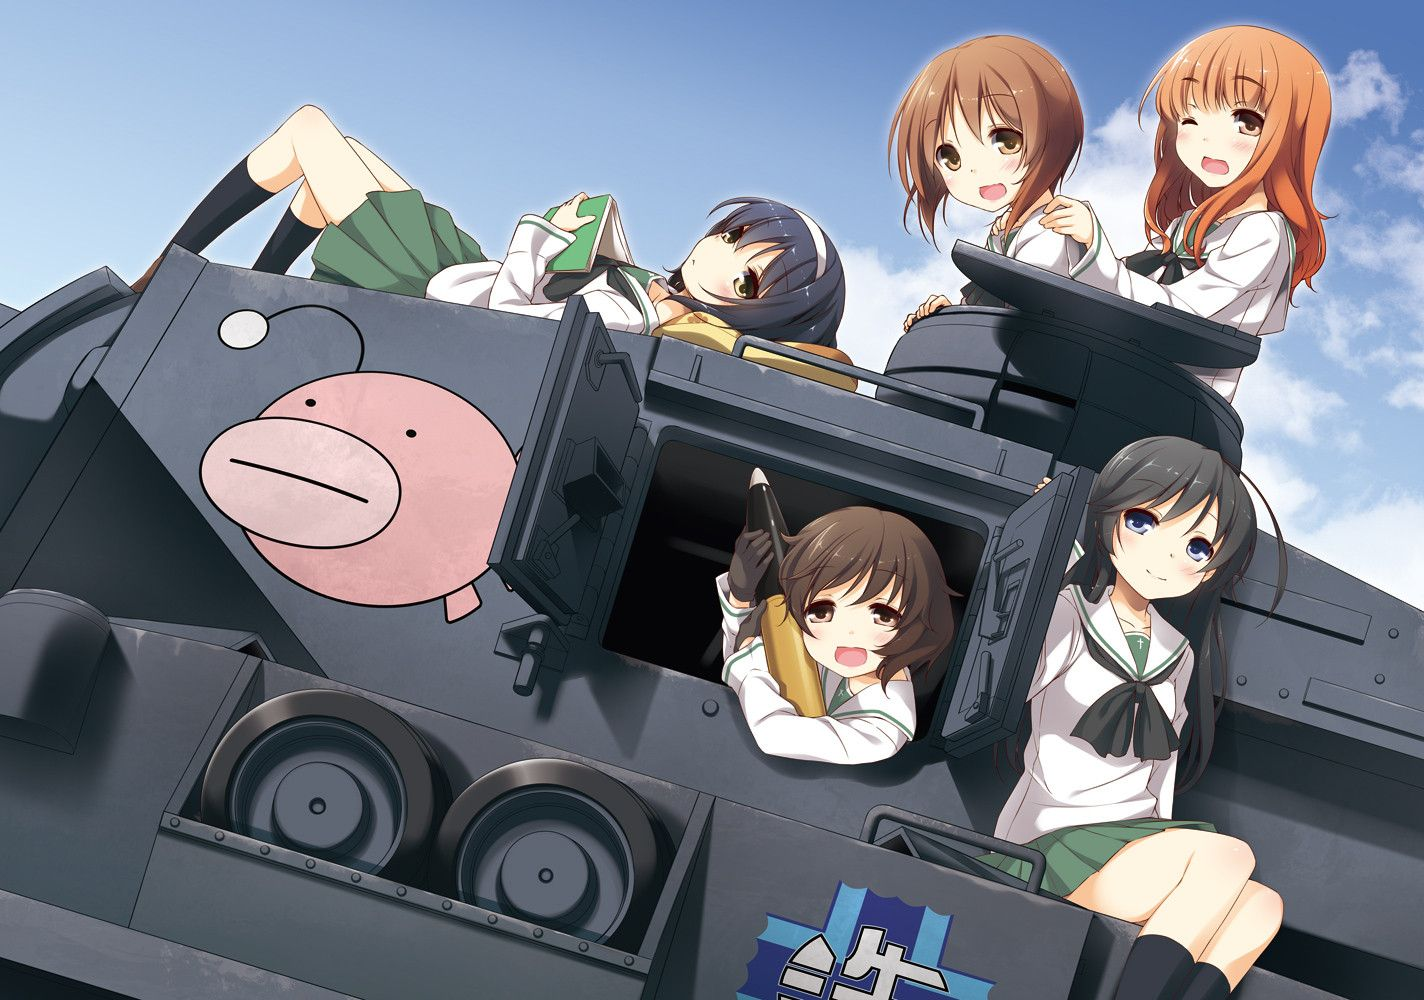 Girls Und Panzer Anime Anime Characters Anime Images